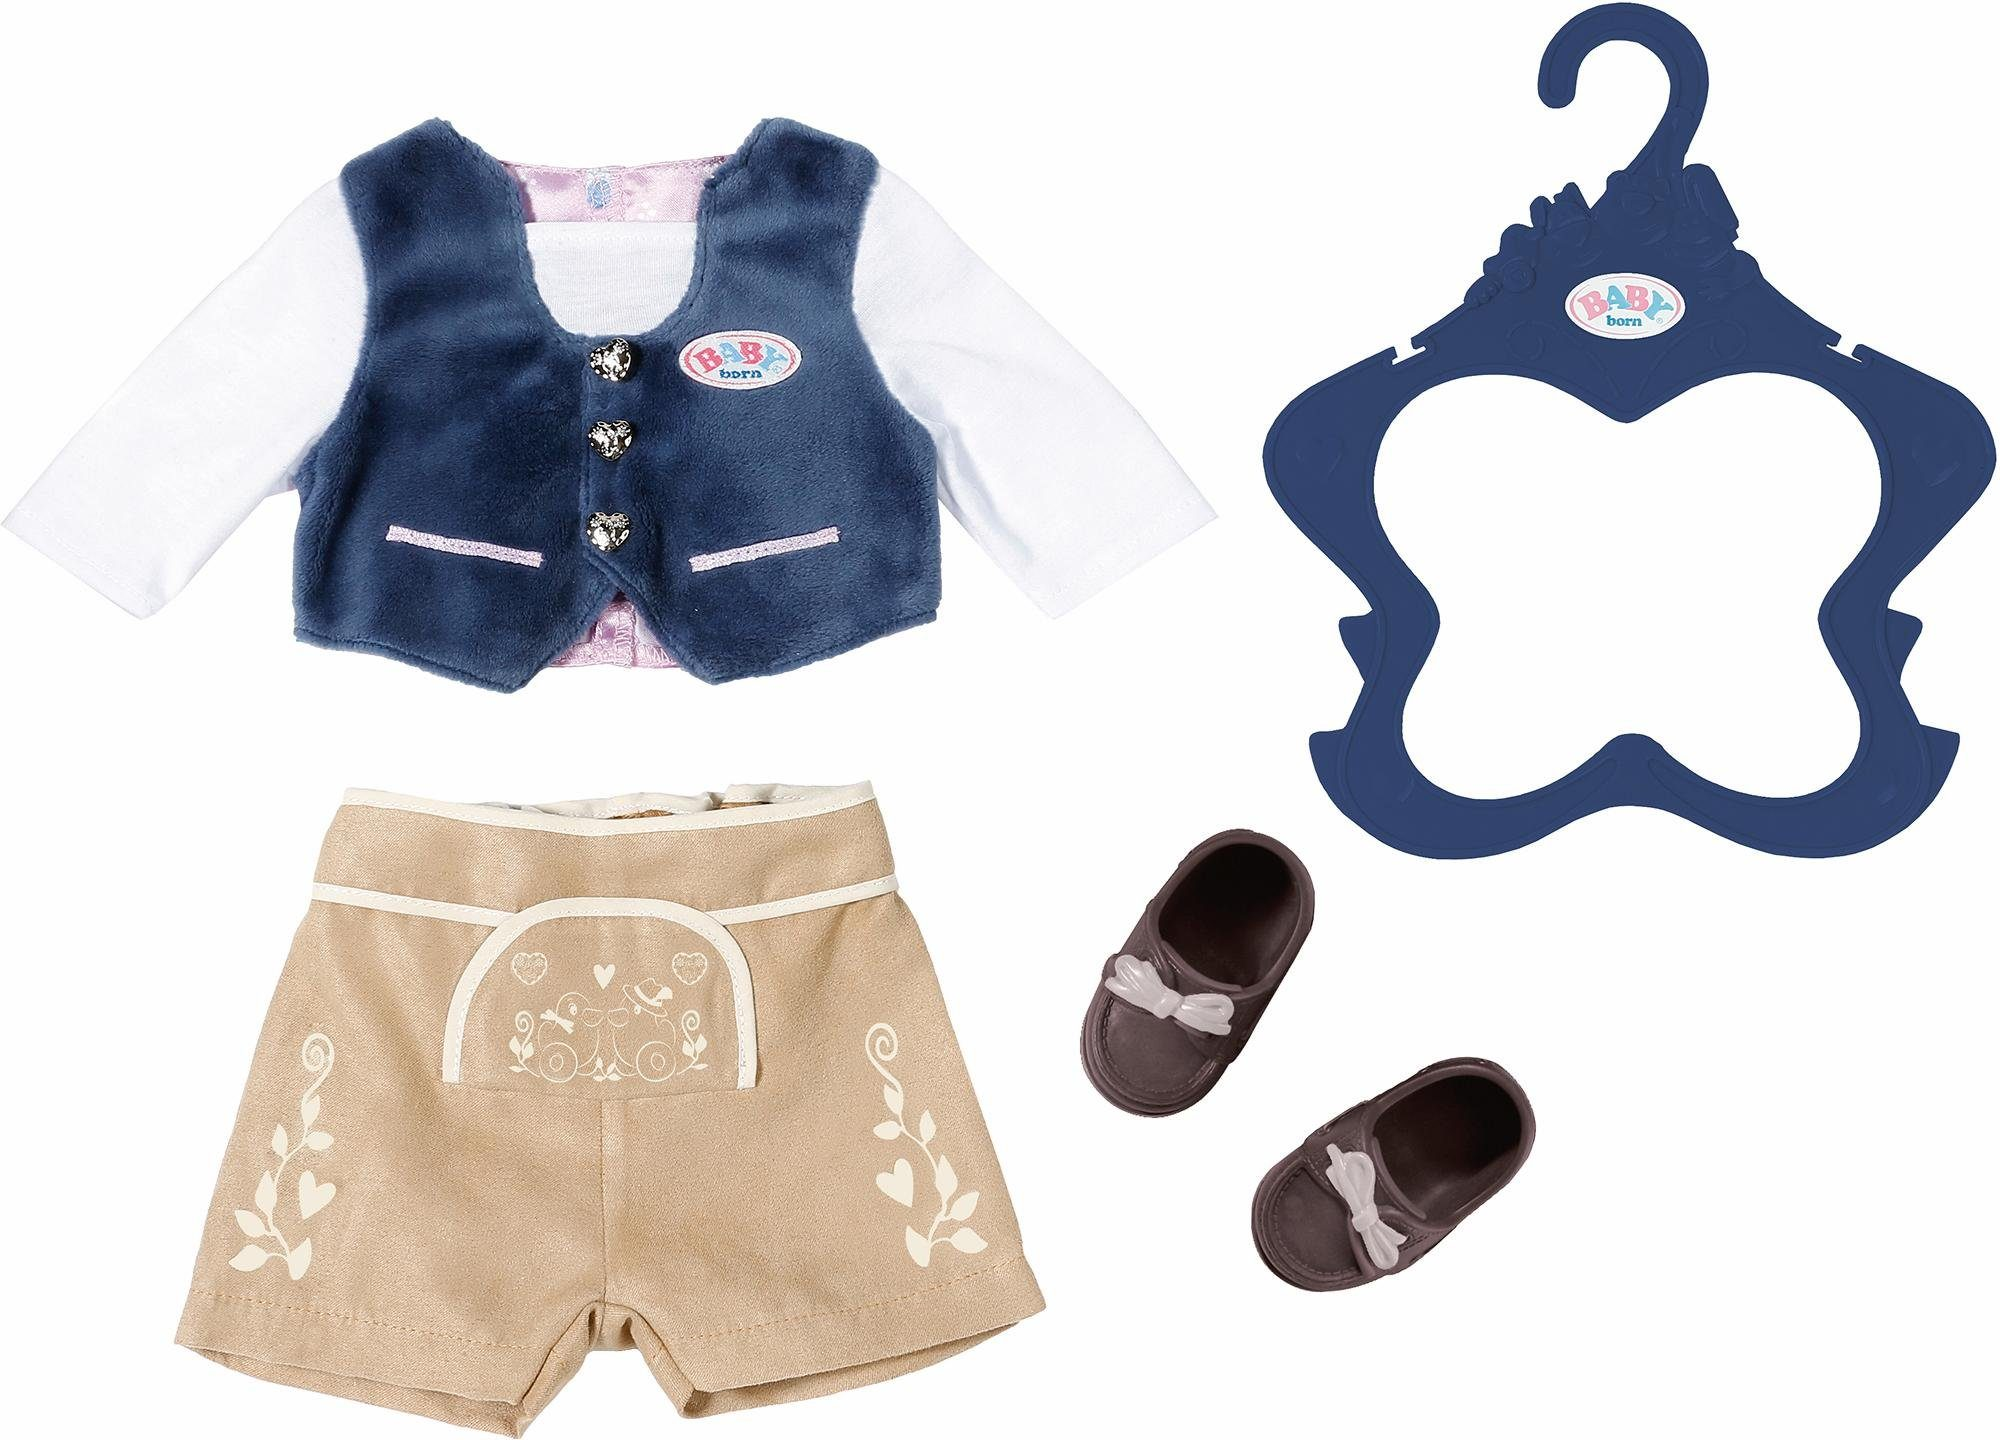 Zapf Creation Puppenkleidung, »BABY born® Trachten-Outfit Junge«